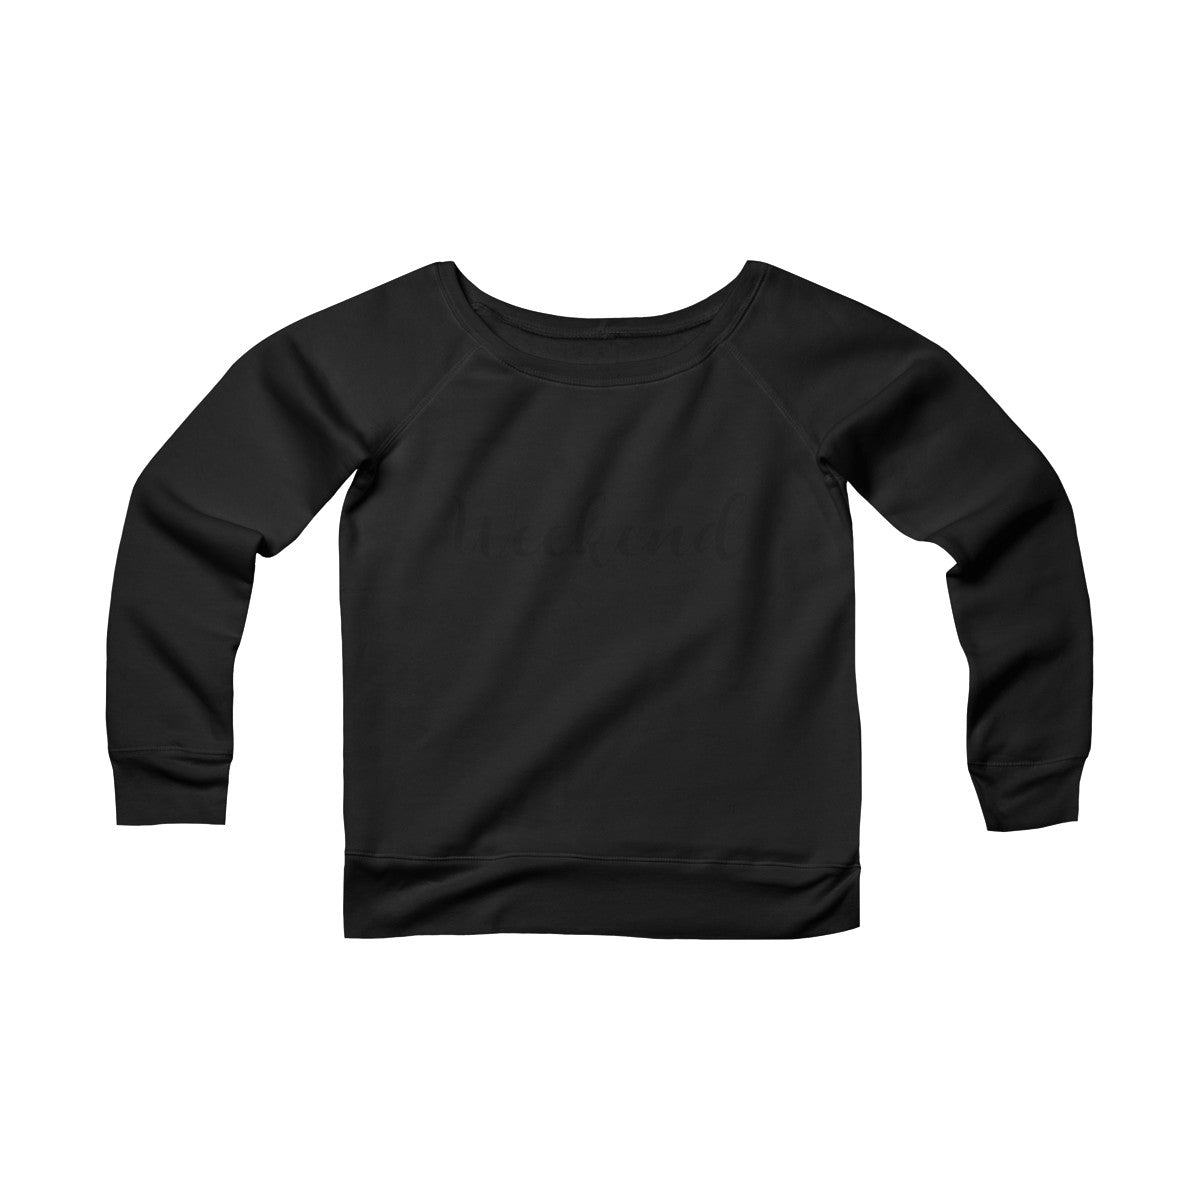 WEEKEND Scoop Neck Sweatshirt